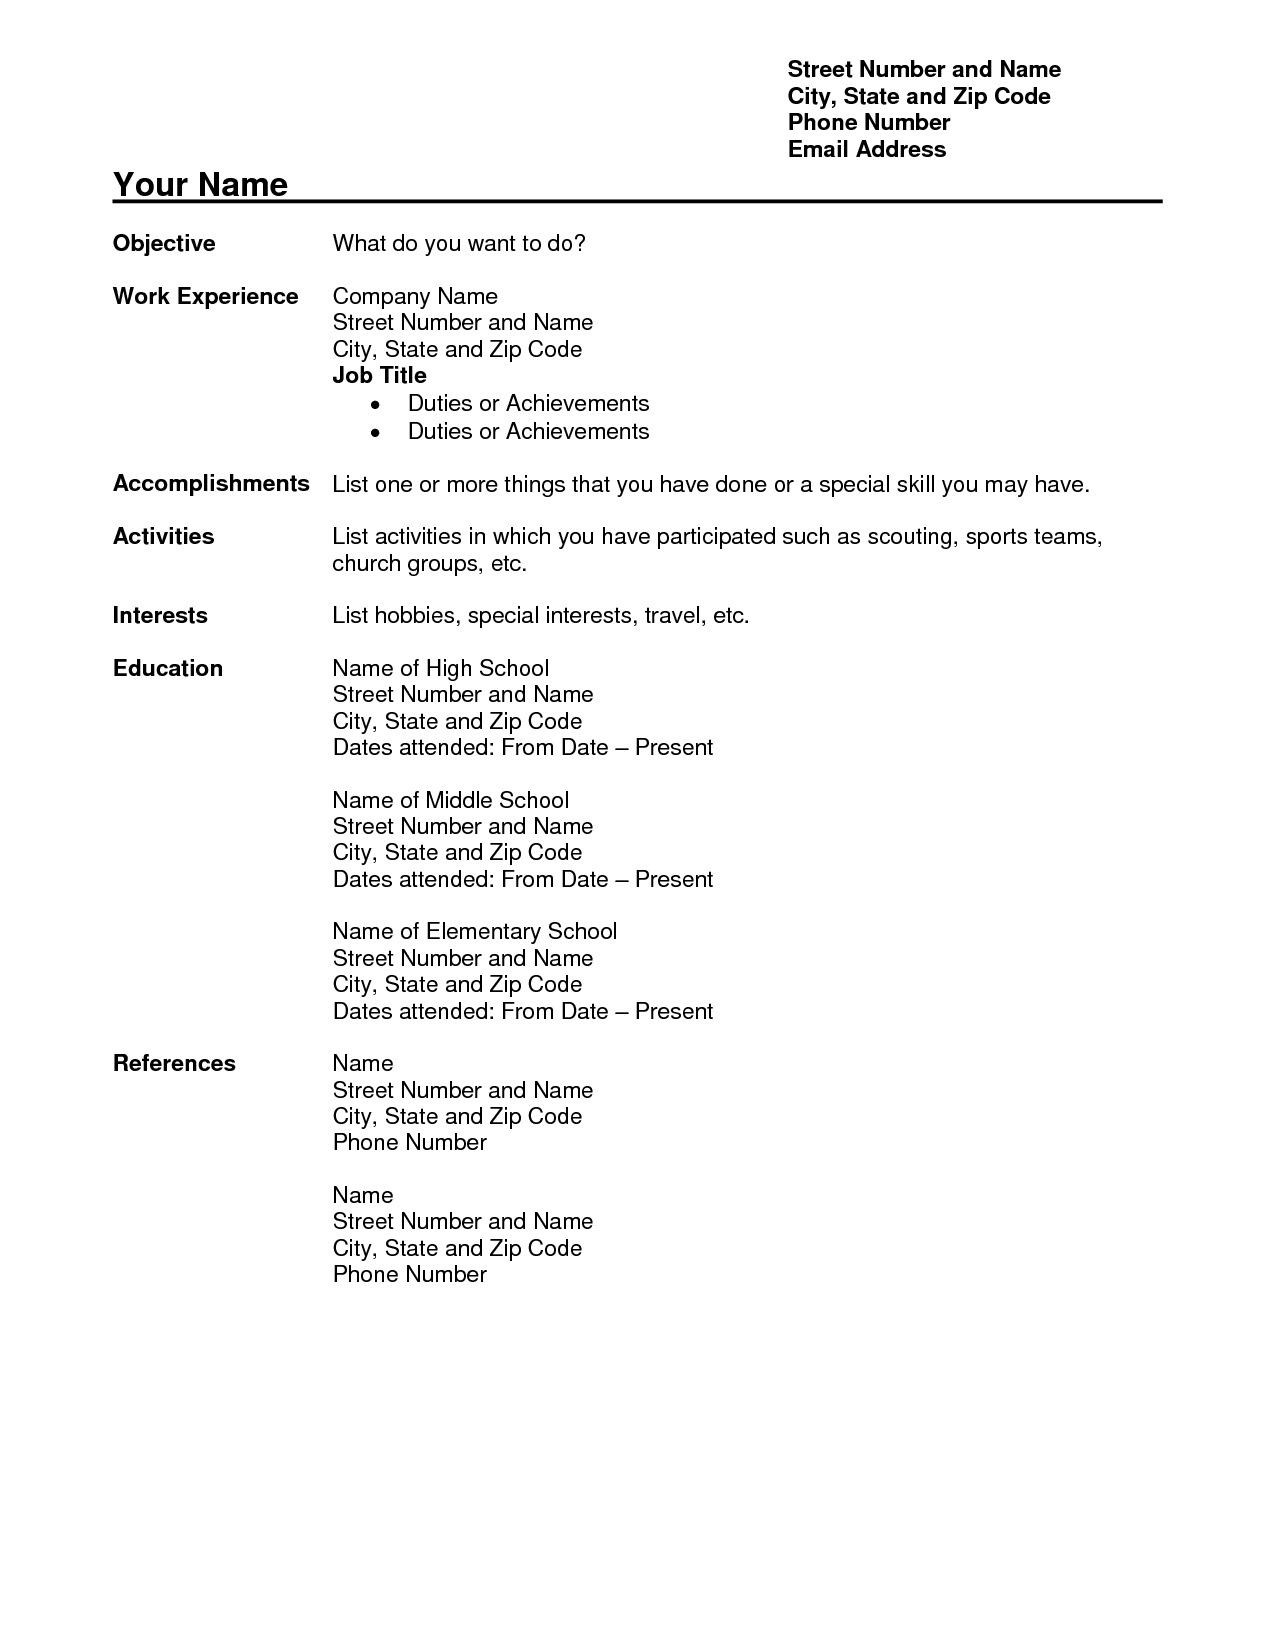 Free teacher resume templates download free teacher resume free teacher resume templates download free teacher resume templates download free teacher resume templates microsoft altavistaventures Gallery